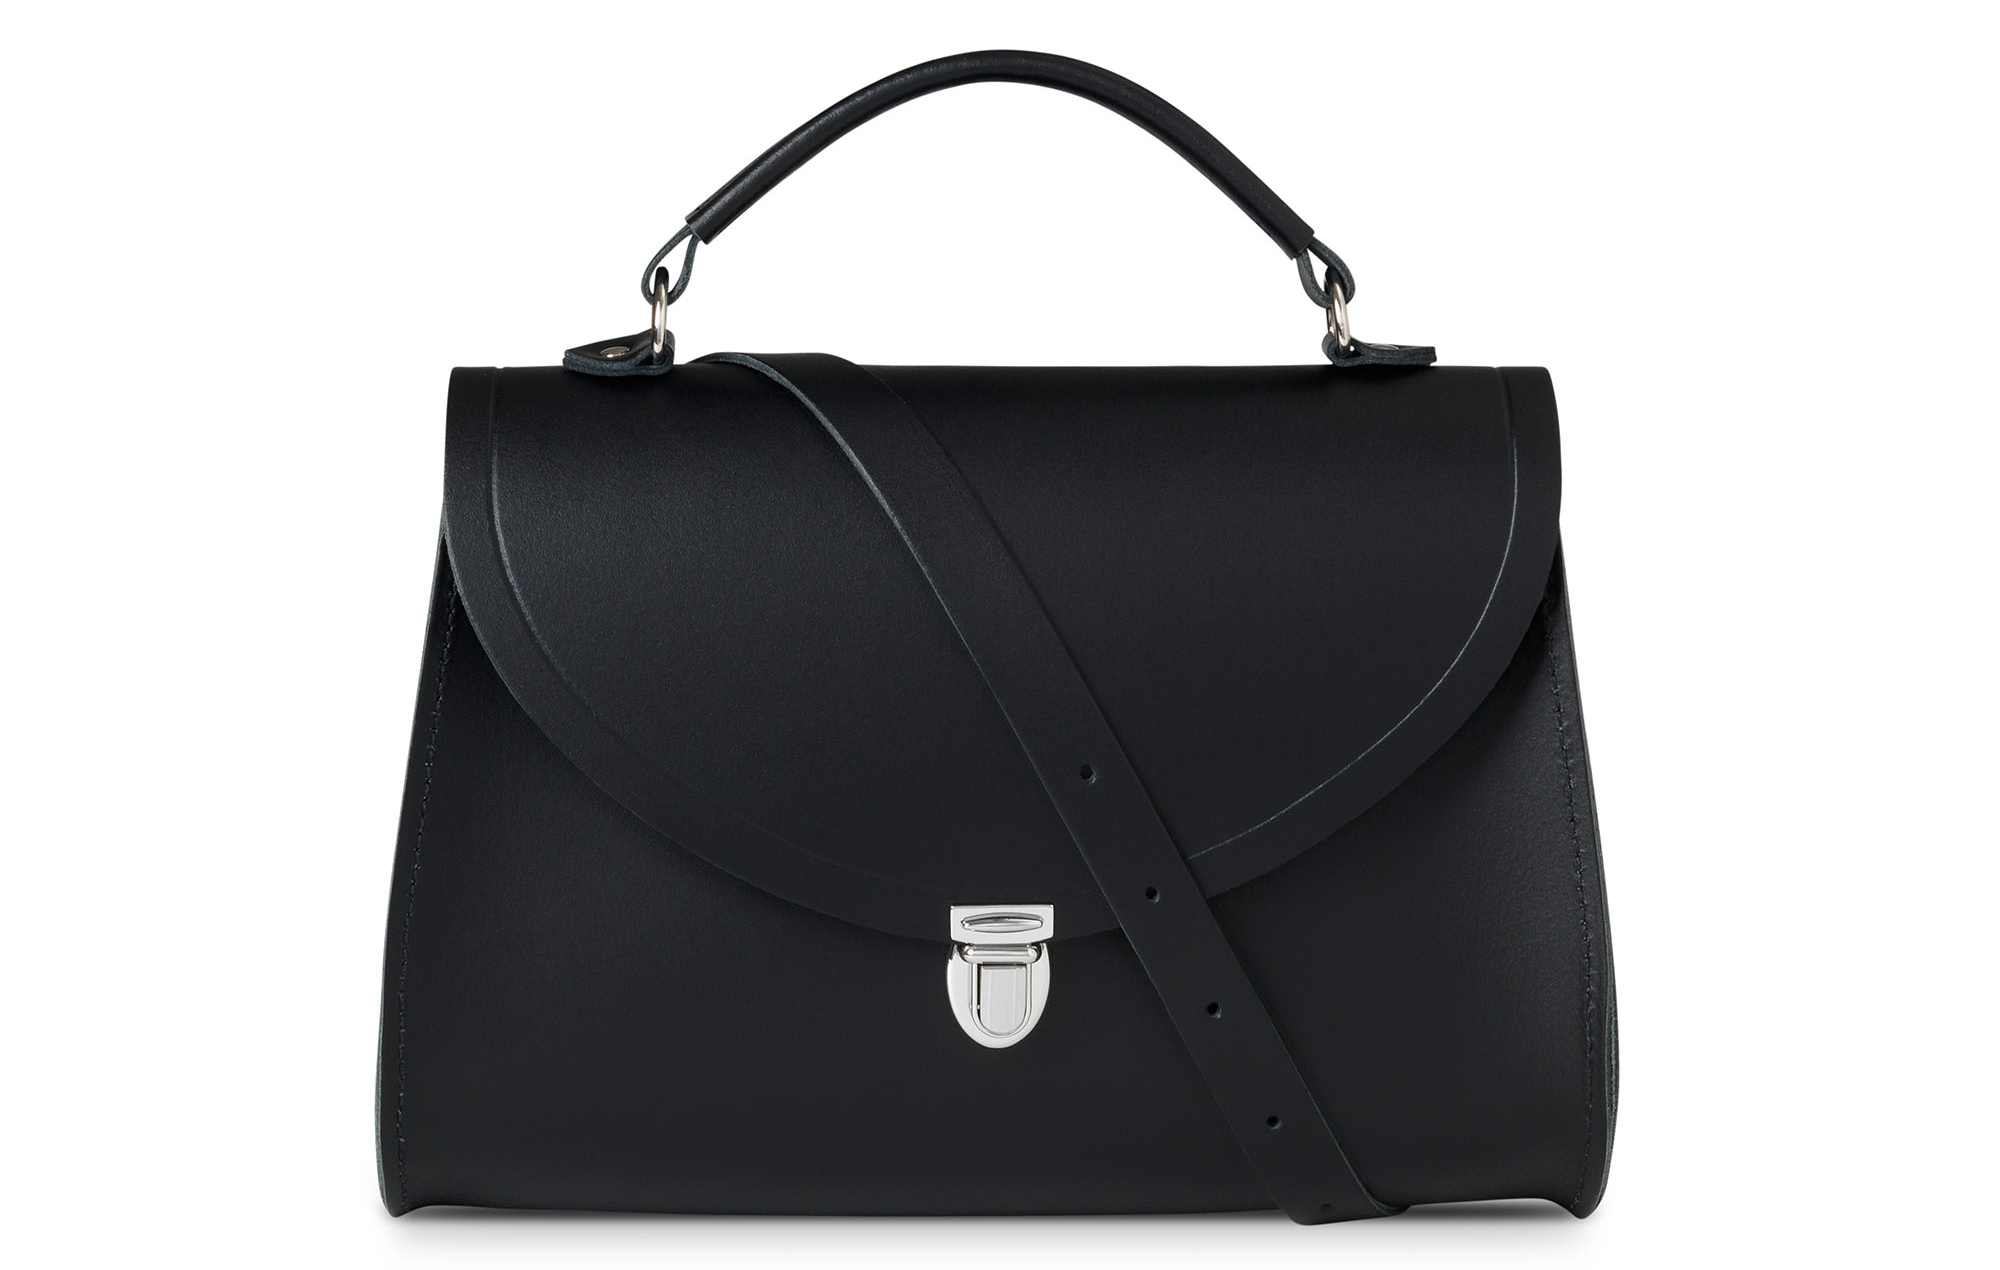 Cambridge Satchel Company Poppy Bag in Black Leather